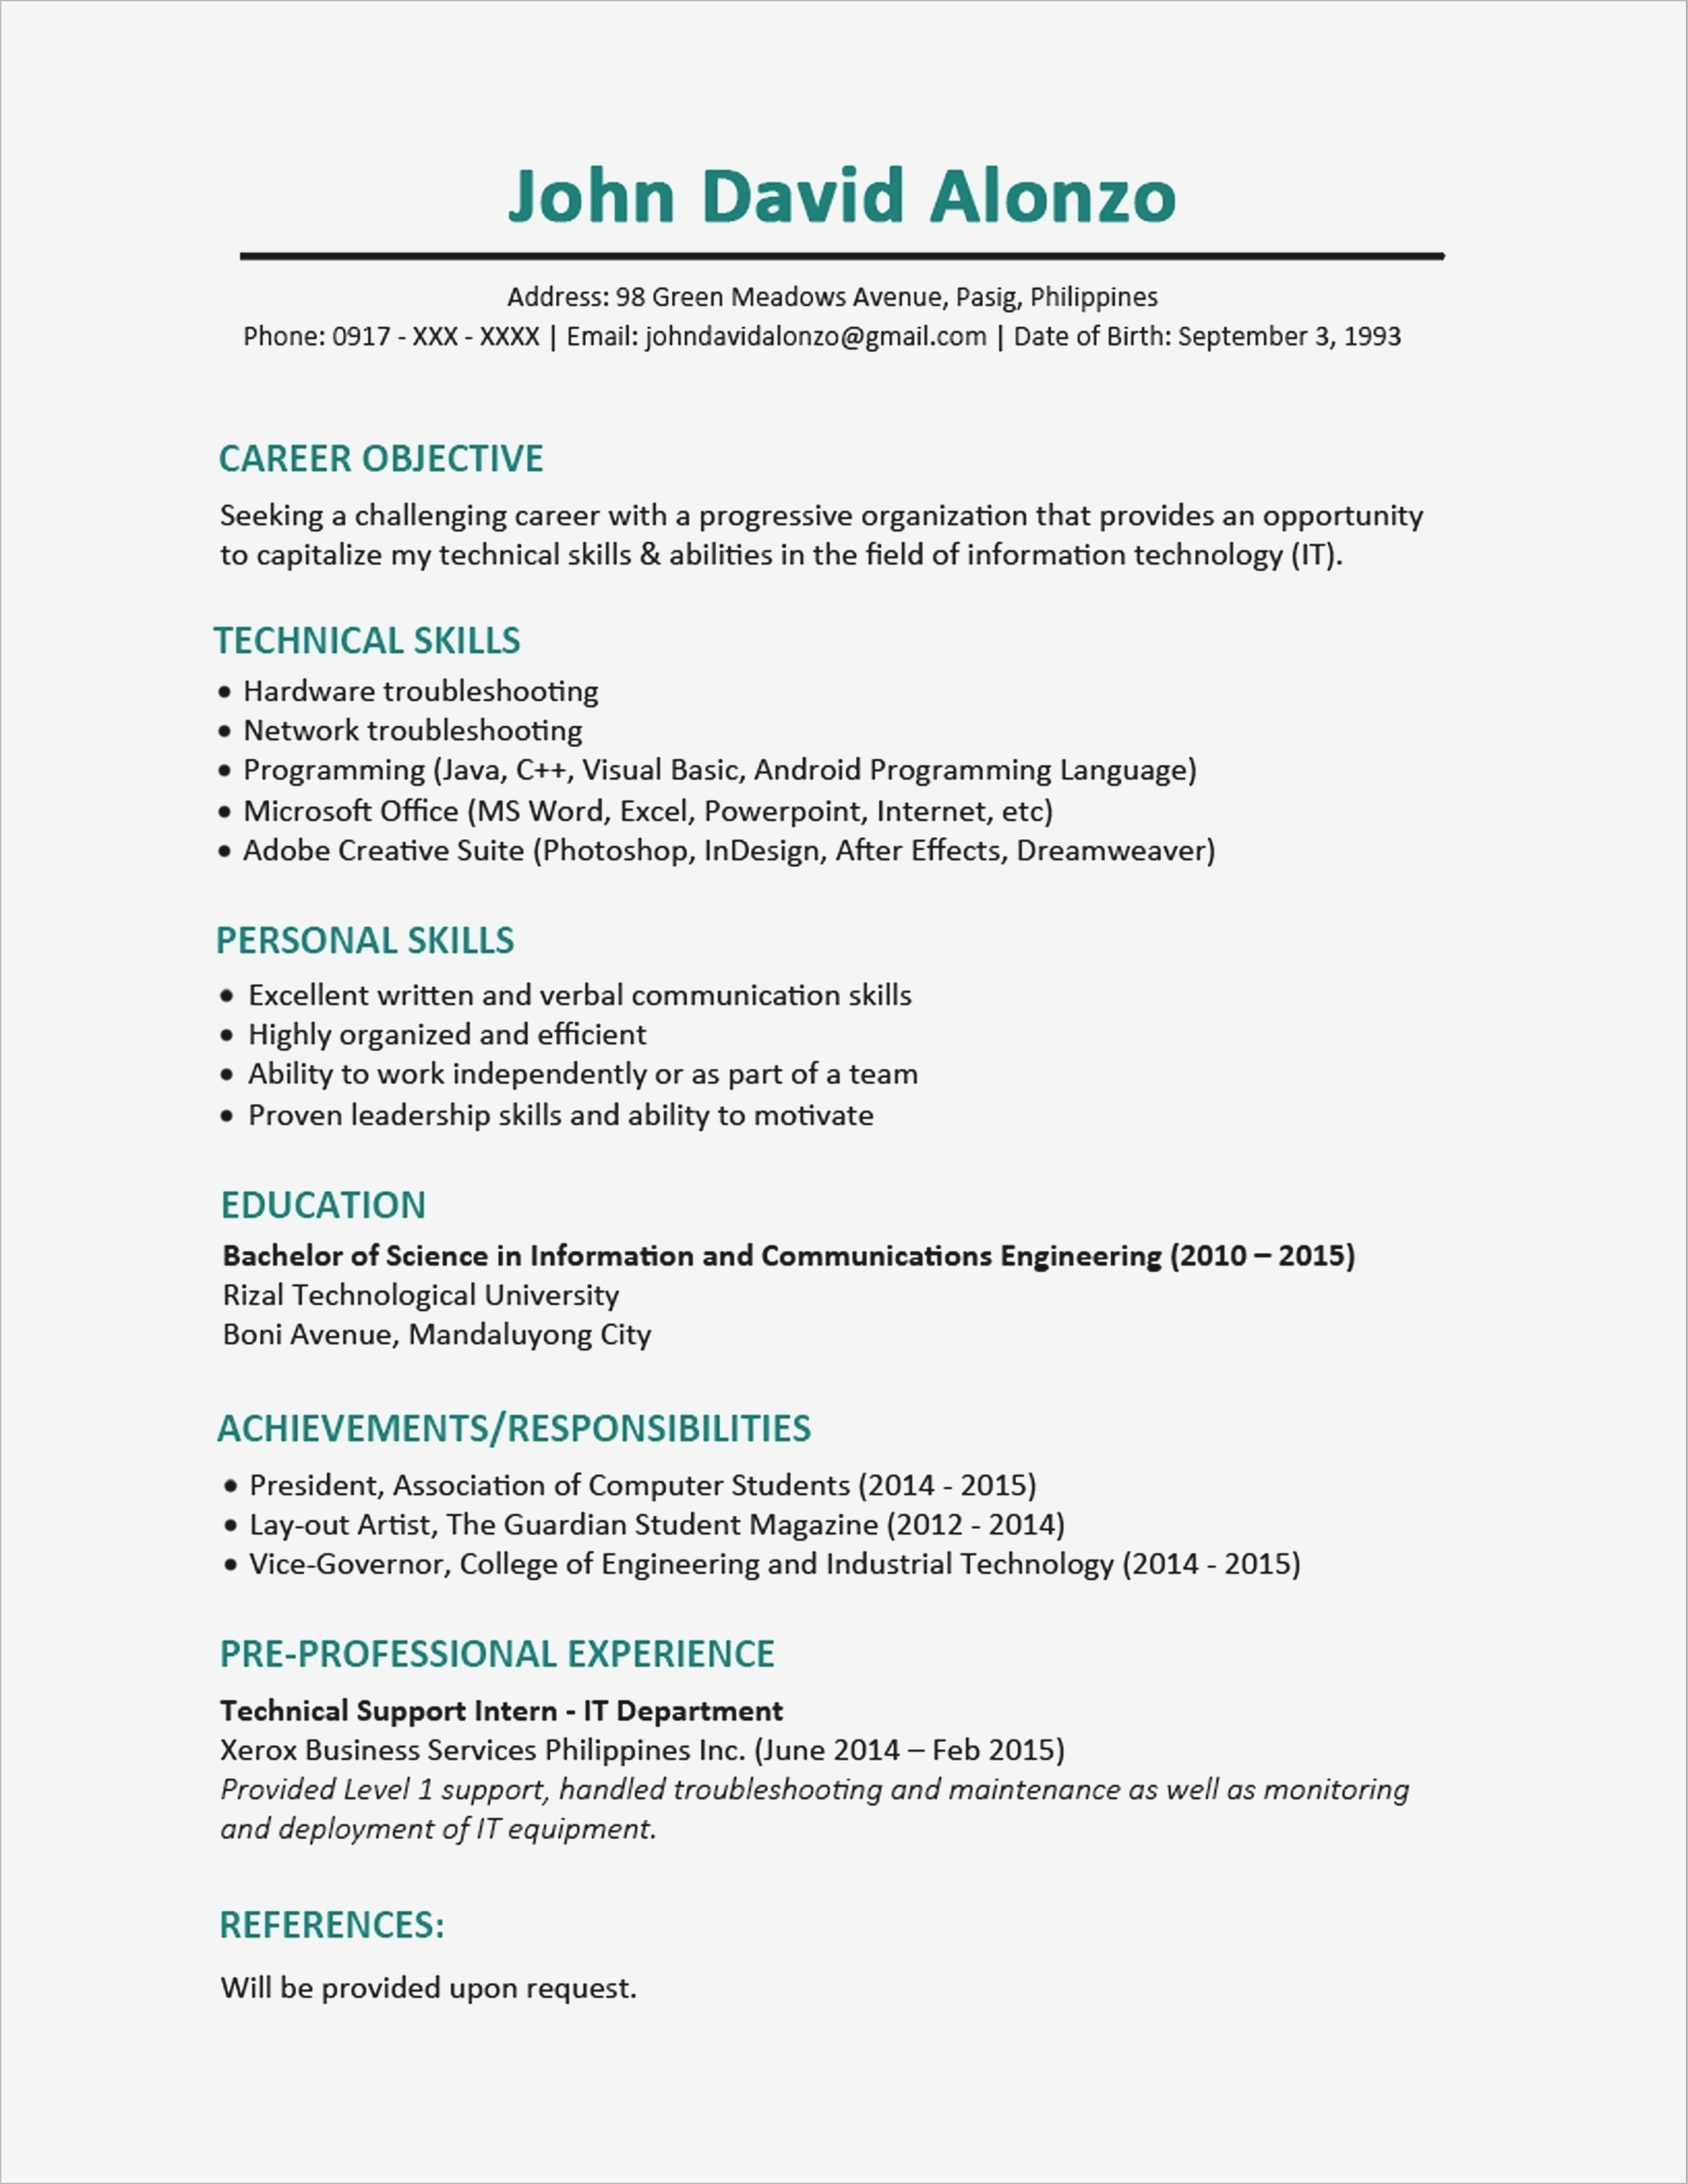 Teacher Resume Template Word - Teacher Resume Sample Awesome Resume for Teacher Elegant Teaching